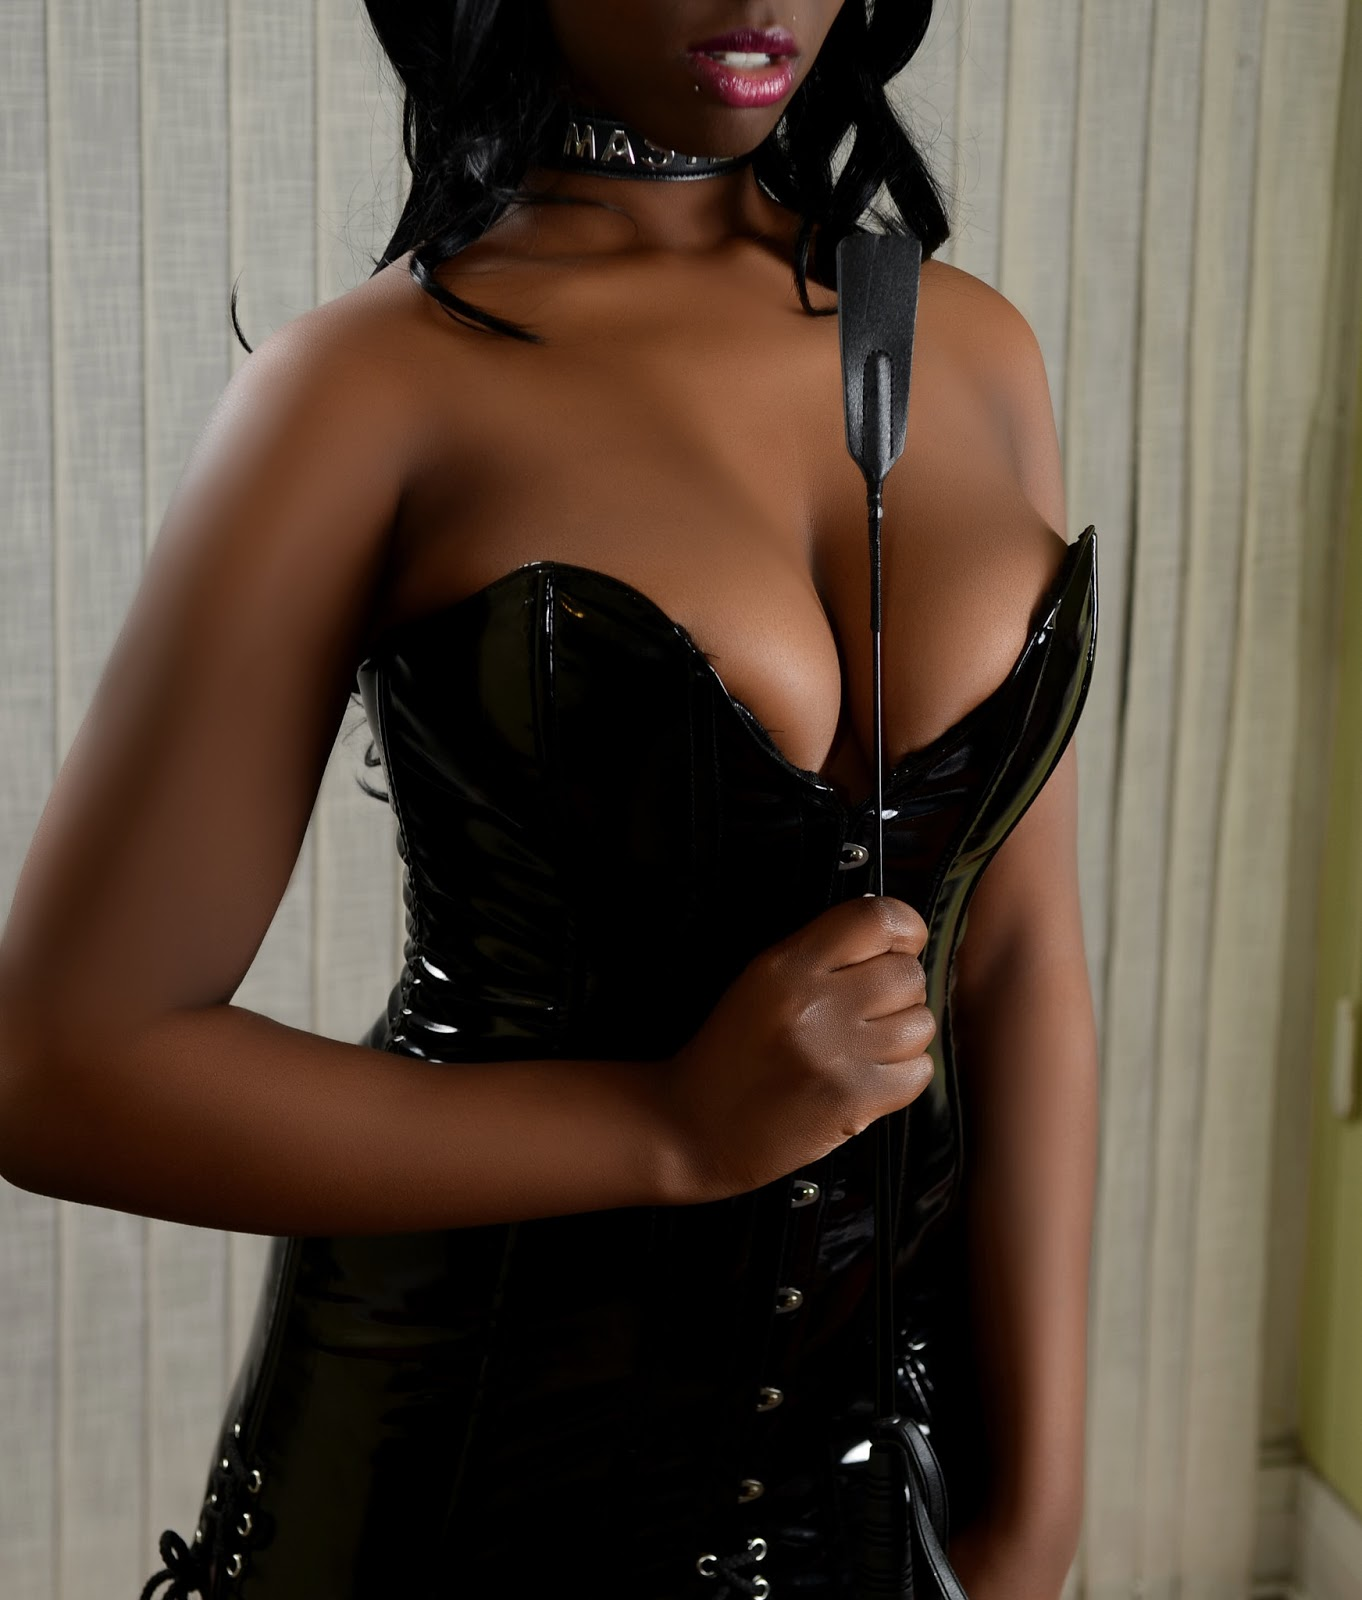 cheating ebony escort toronto